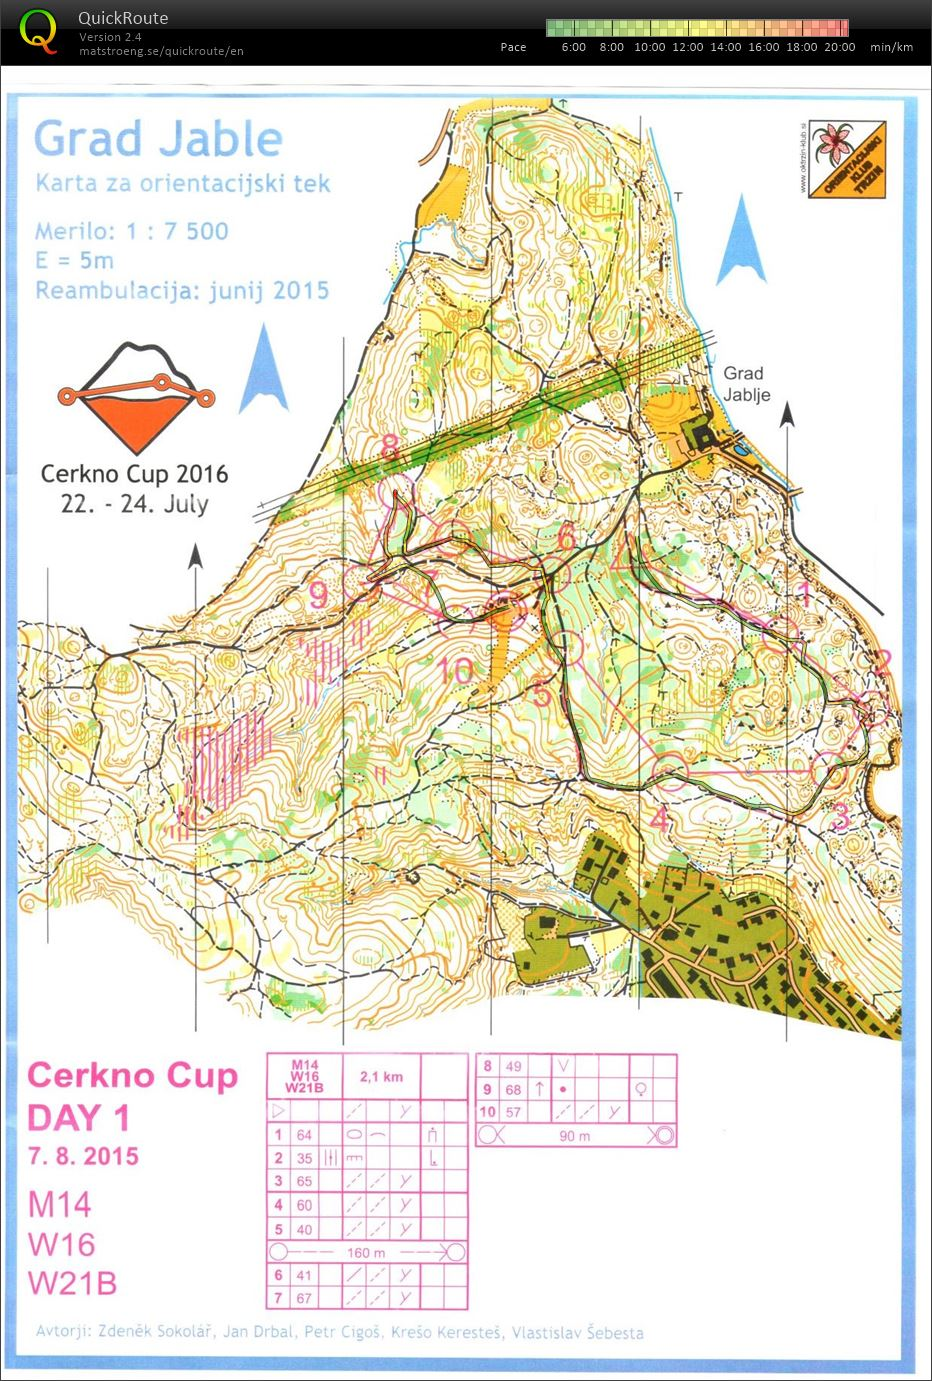 Cerkno Cup 2015-Day 1 (07. 08. 2015)